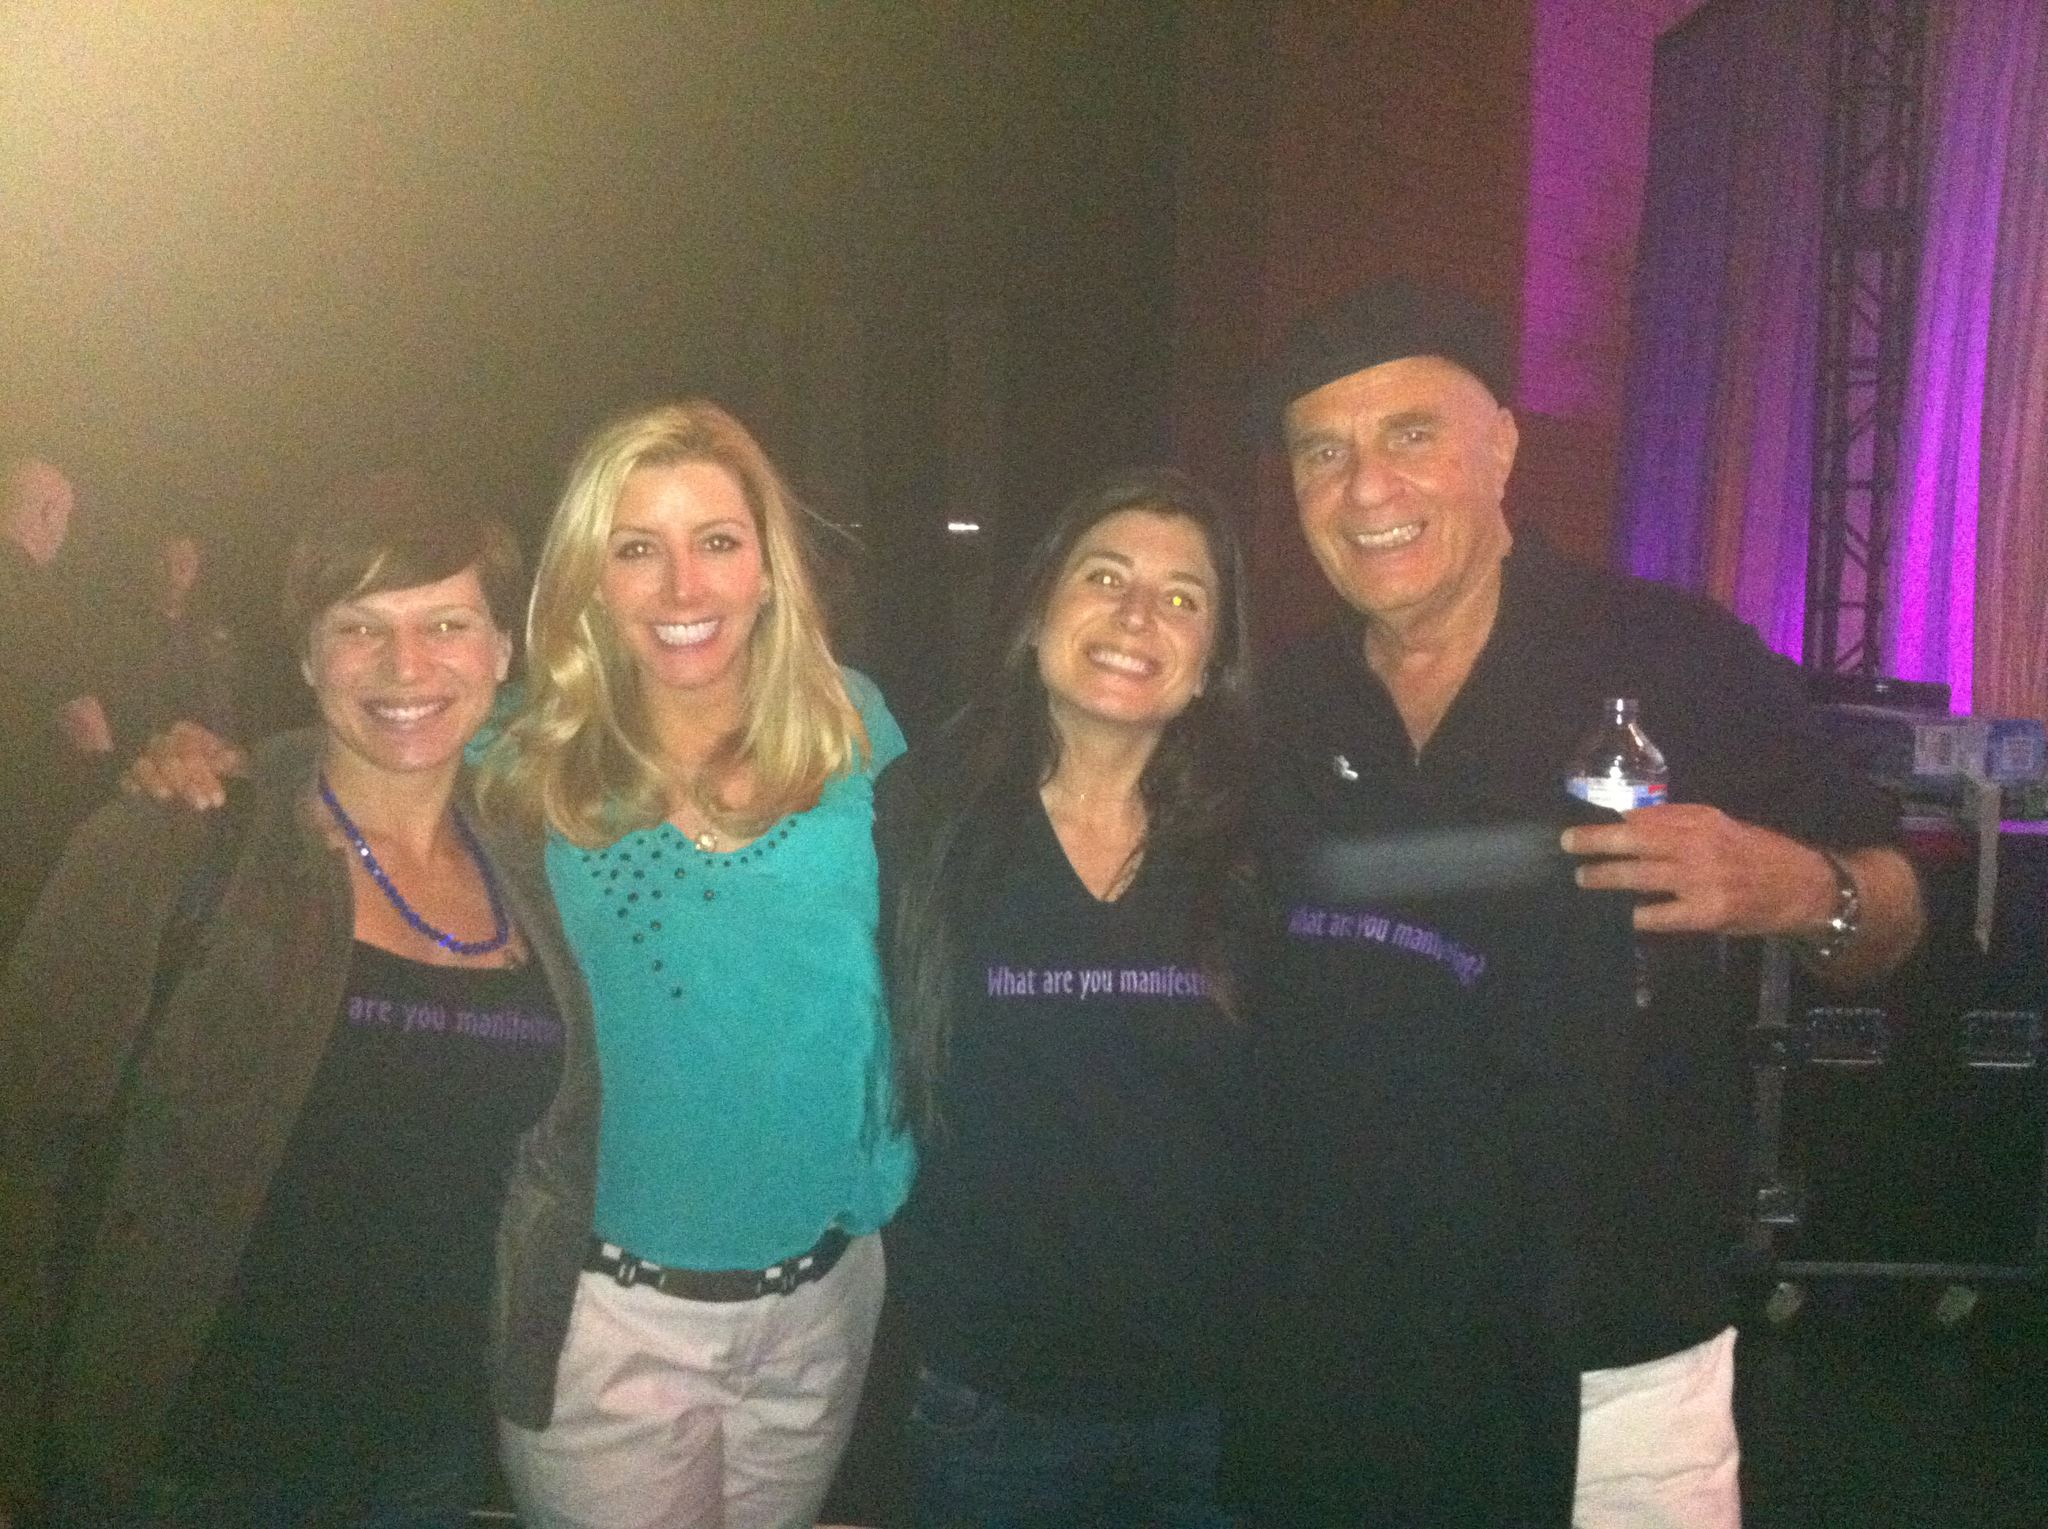 wayne dyer archives the manifest station wayne and sara blakely are so funny they are showing off their spanx ha